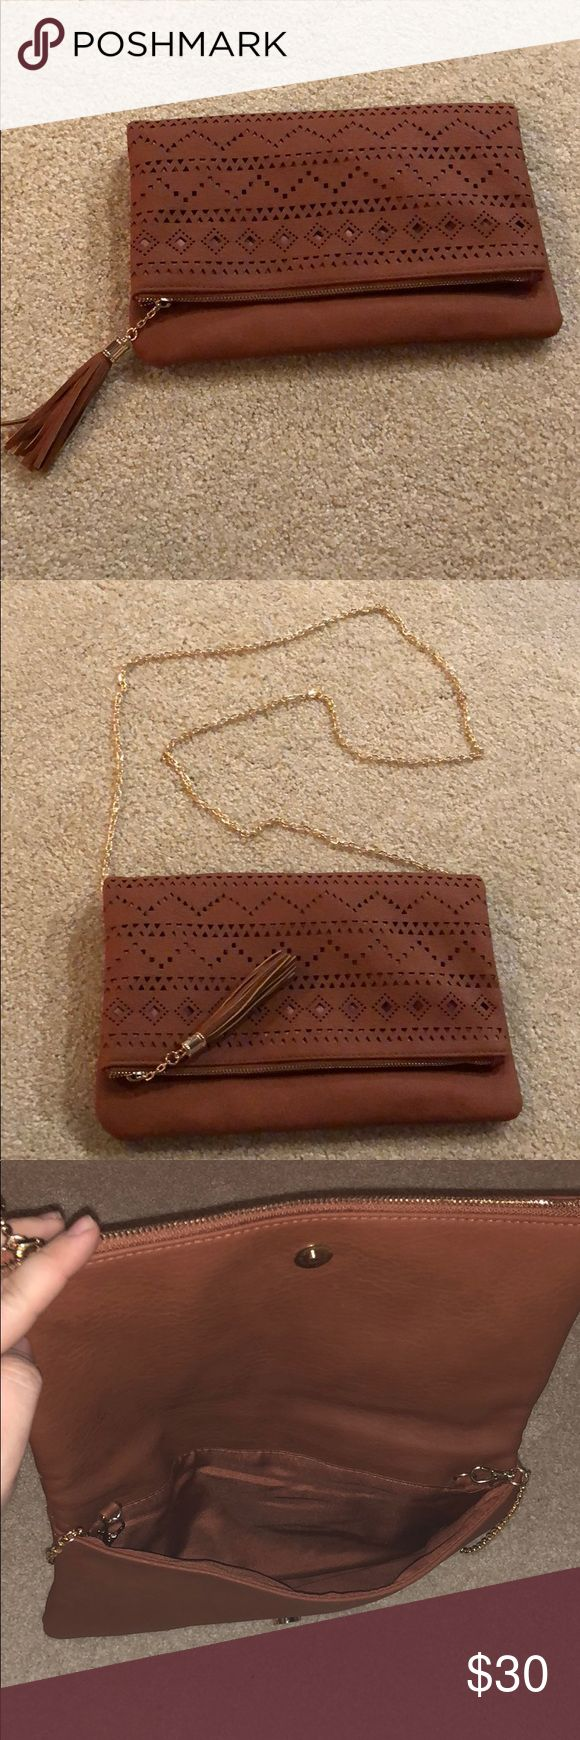 A brown clutch/crossbody purse A brown purse that can either be used as a clutch or a crossbody. It comes with a chain for the strap. Only used once. torrid Bags Crossbody Bags